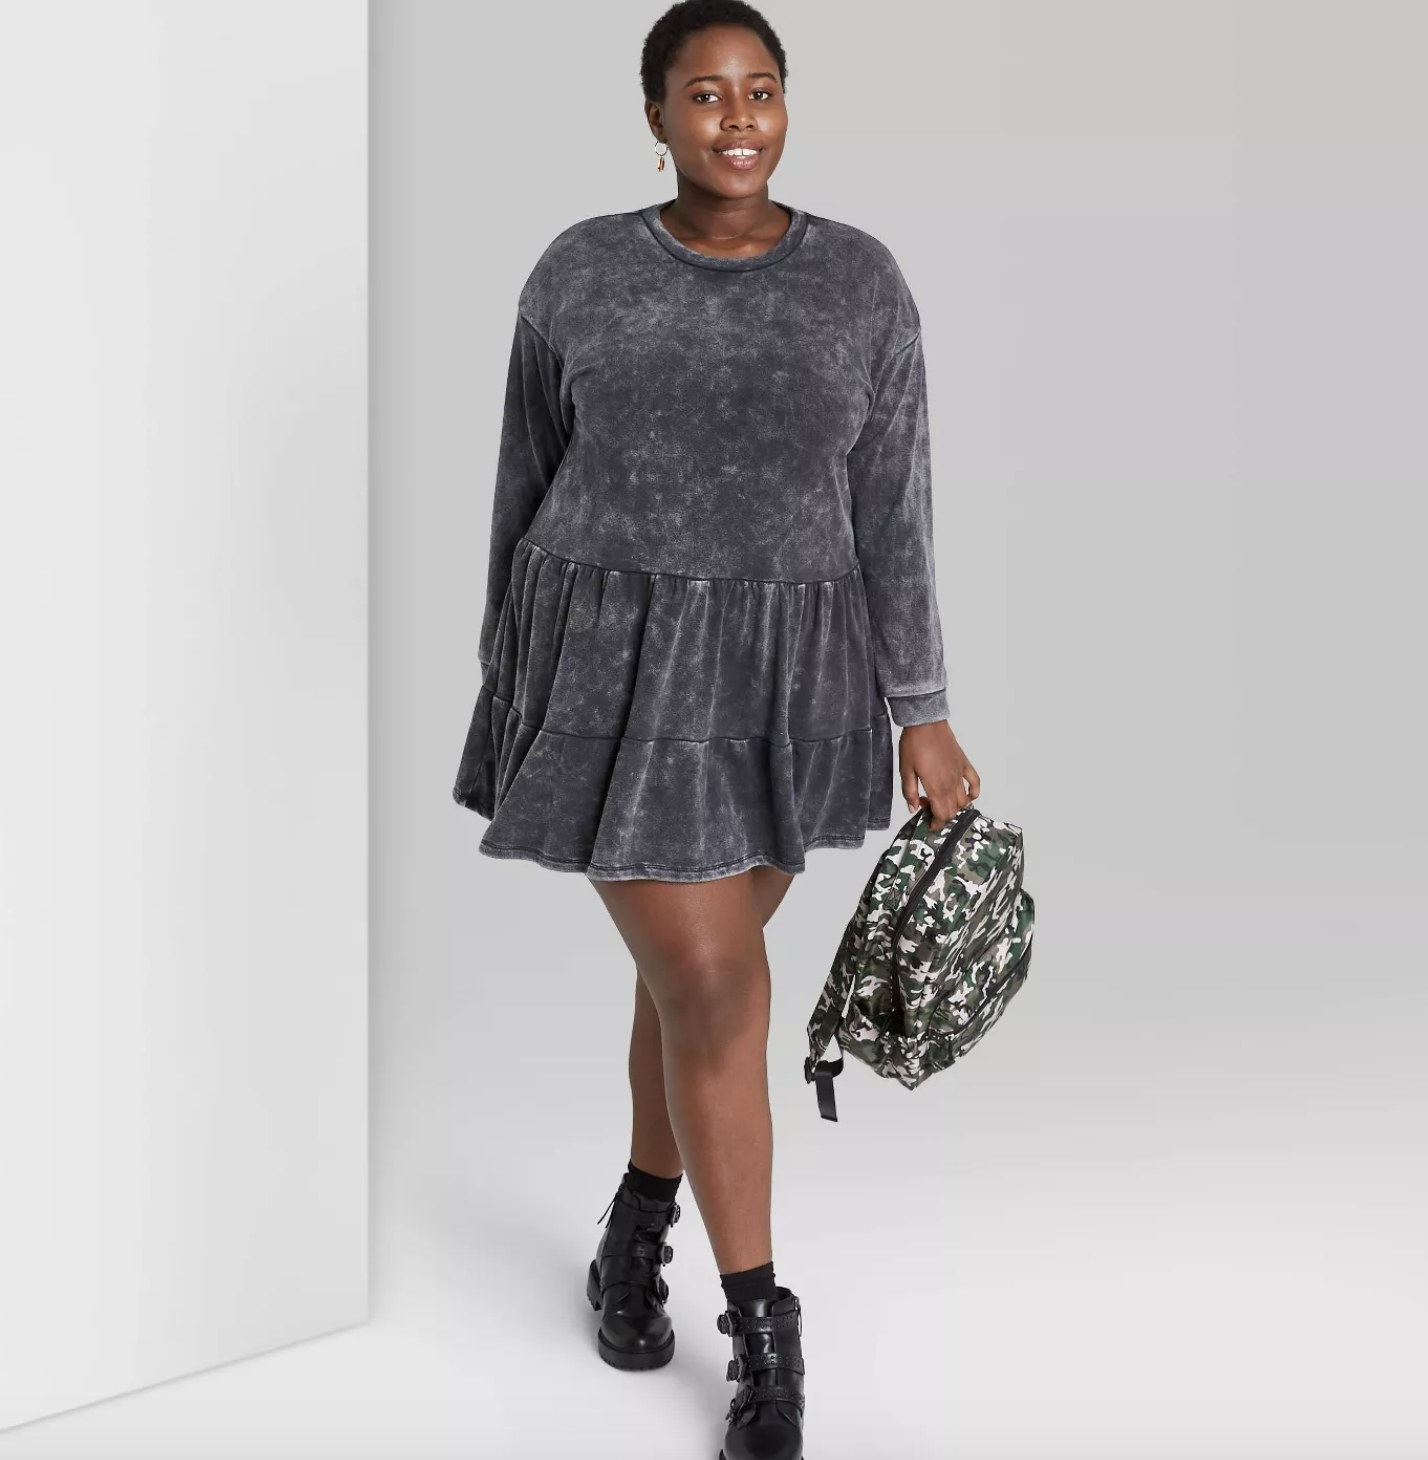 long-sleeve mineral wash dress in black